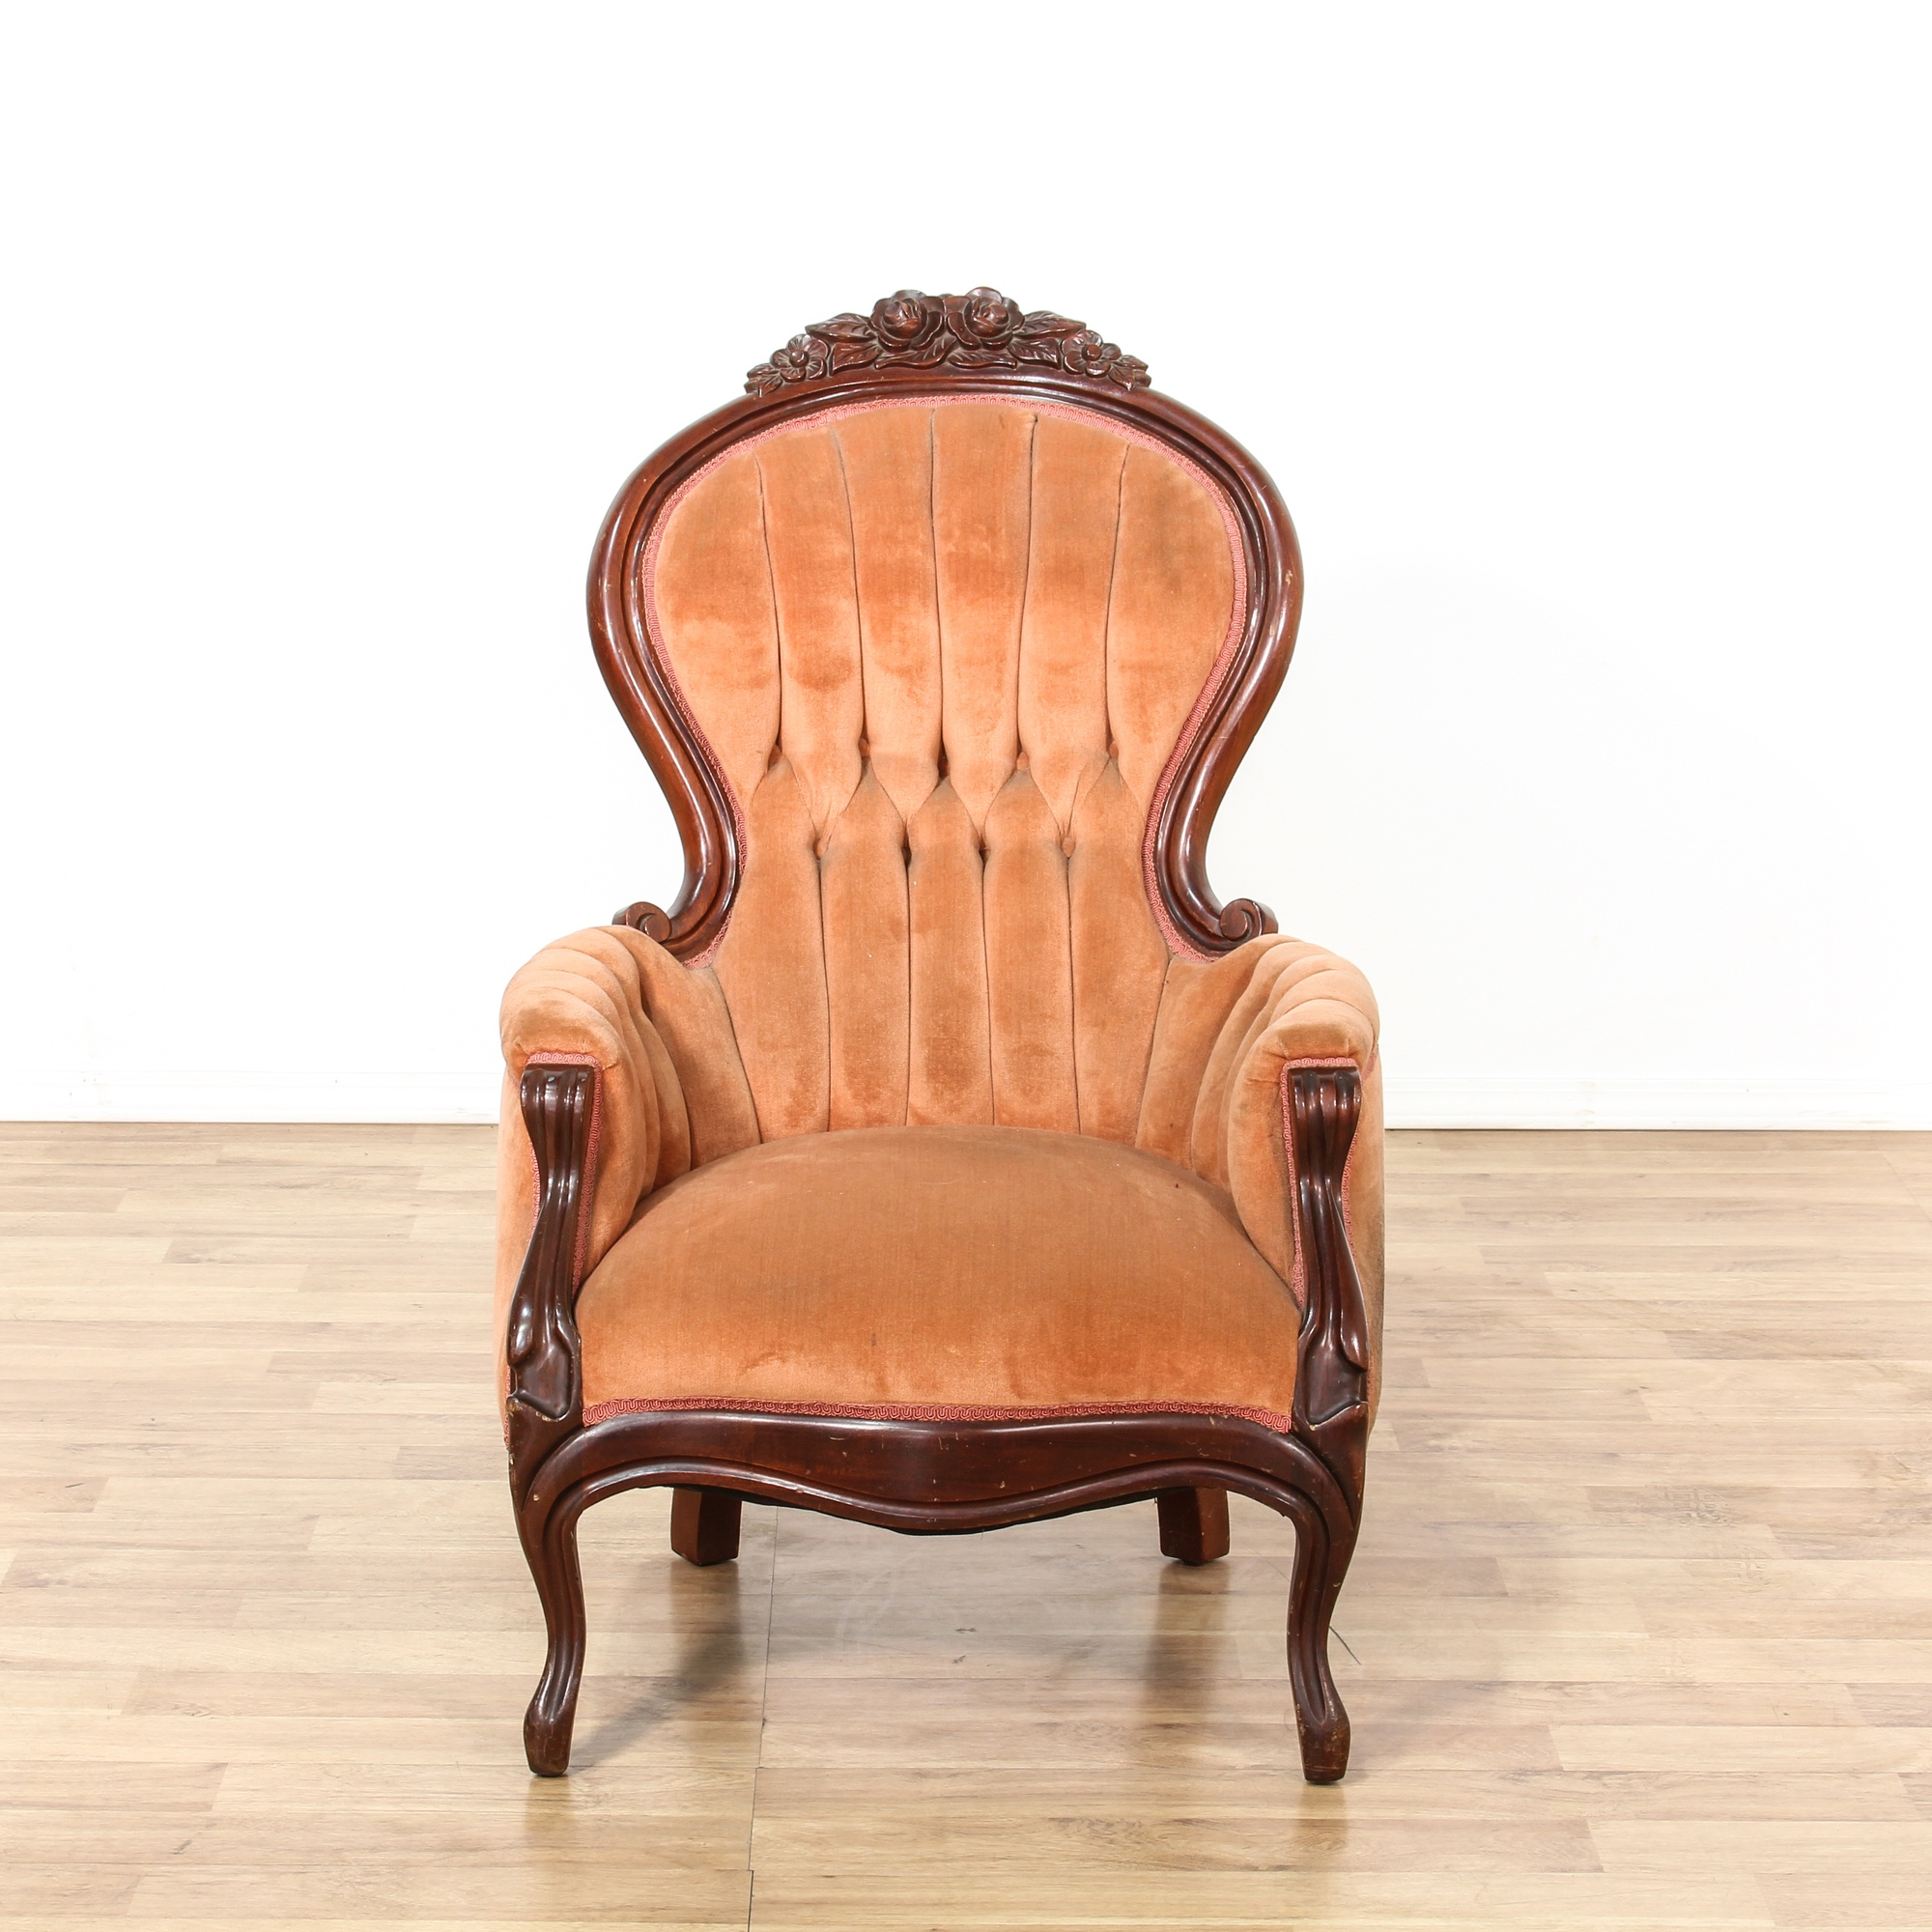 Highly Carved Upholstered Victorian Armchair Loveseat